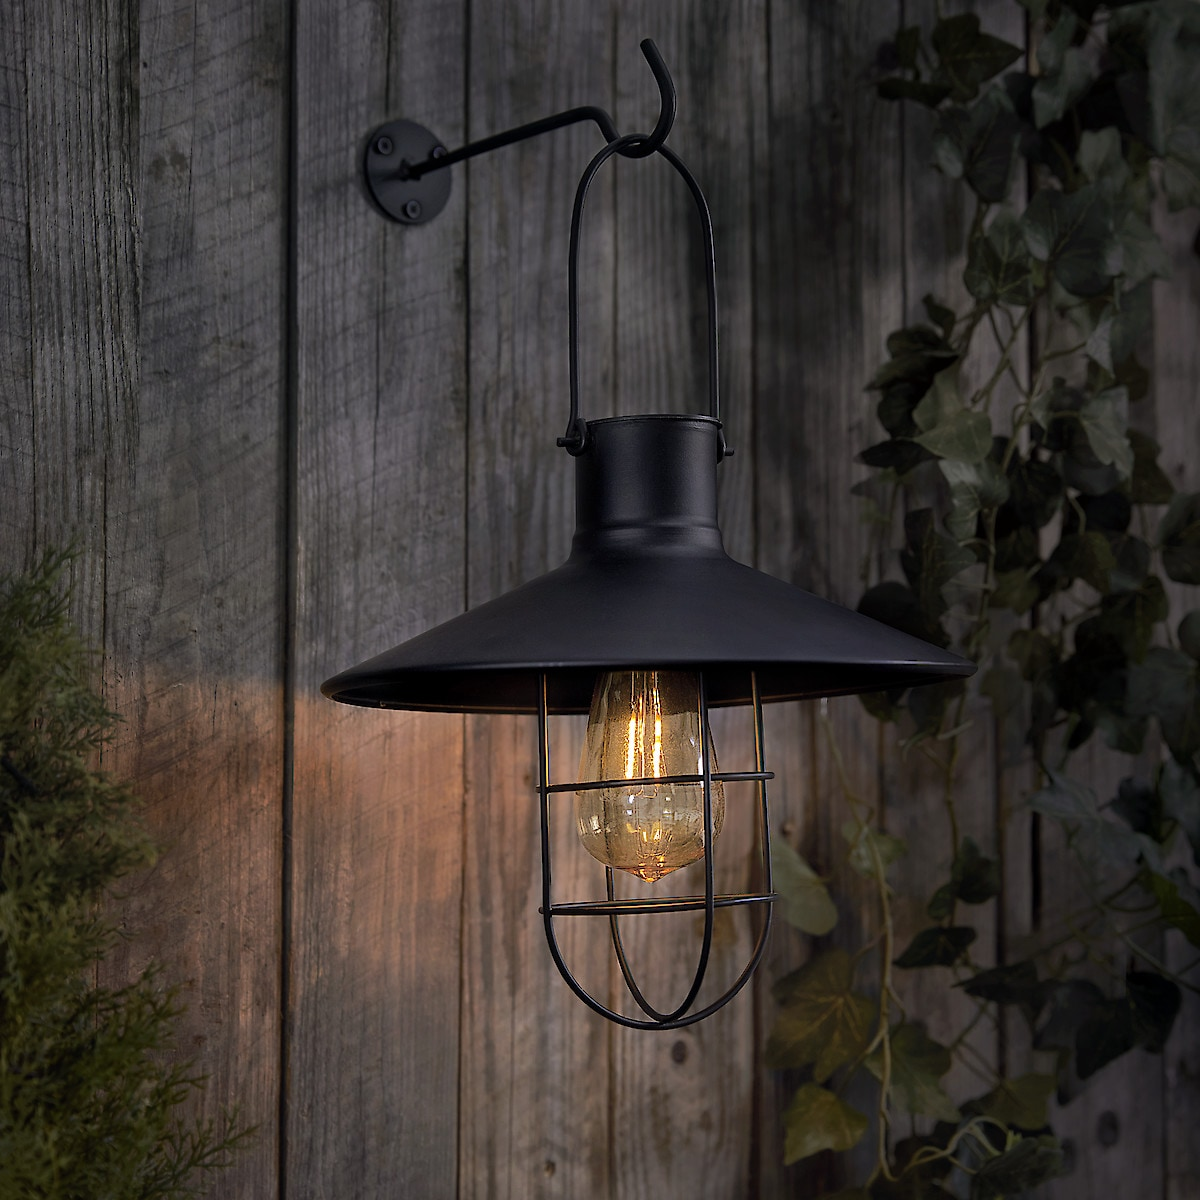 Northlight solcellelampe